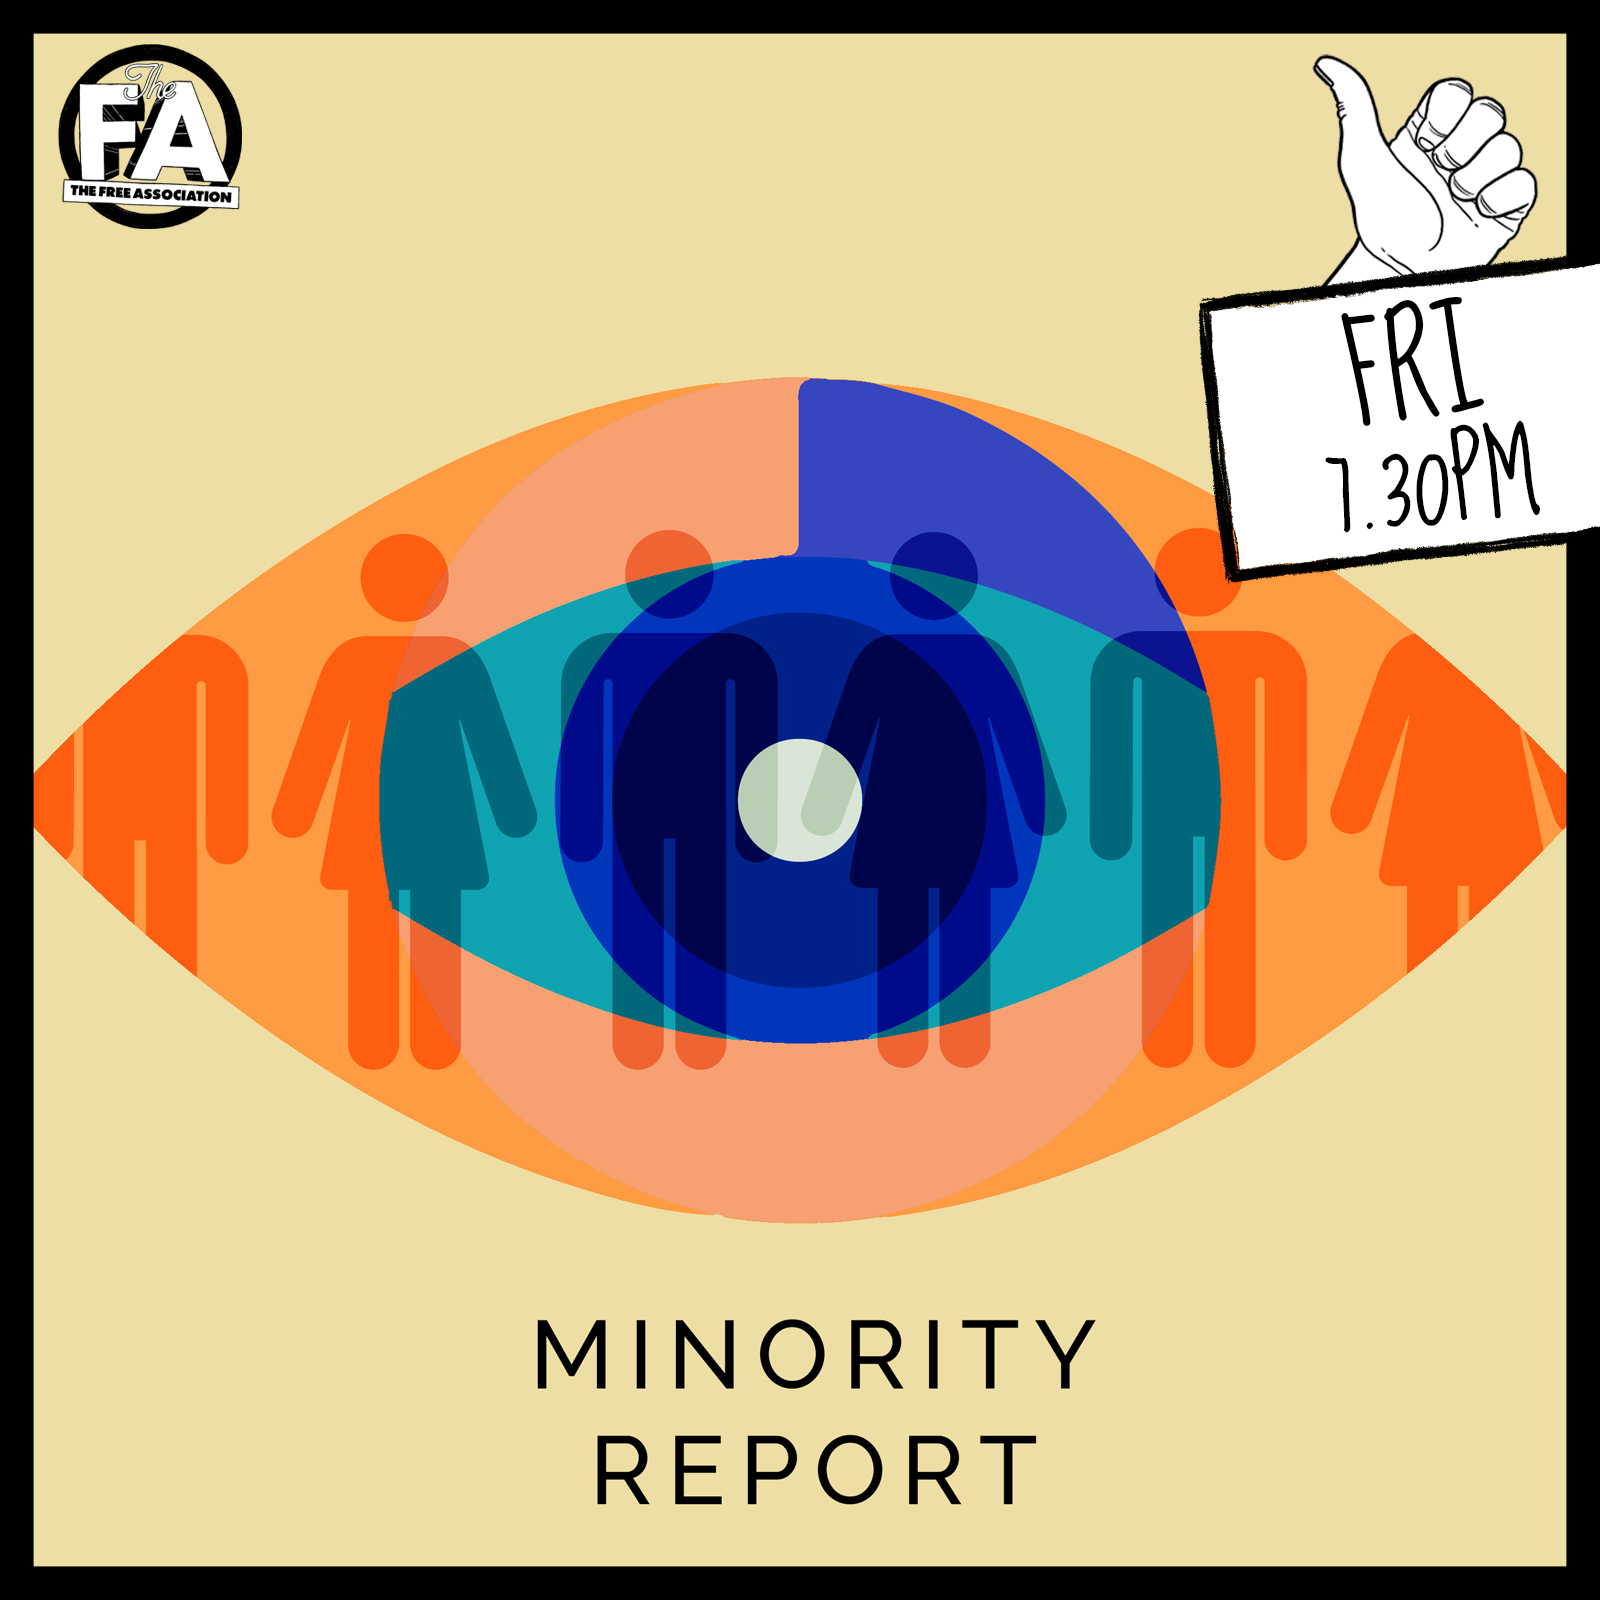 MINORITY REPORT FRI.jpg